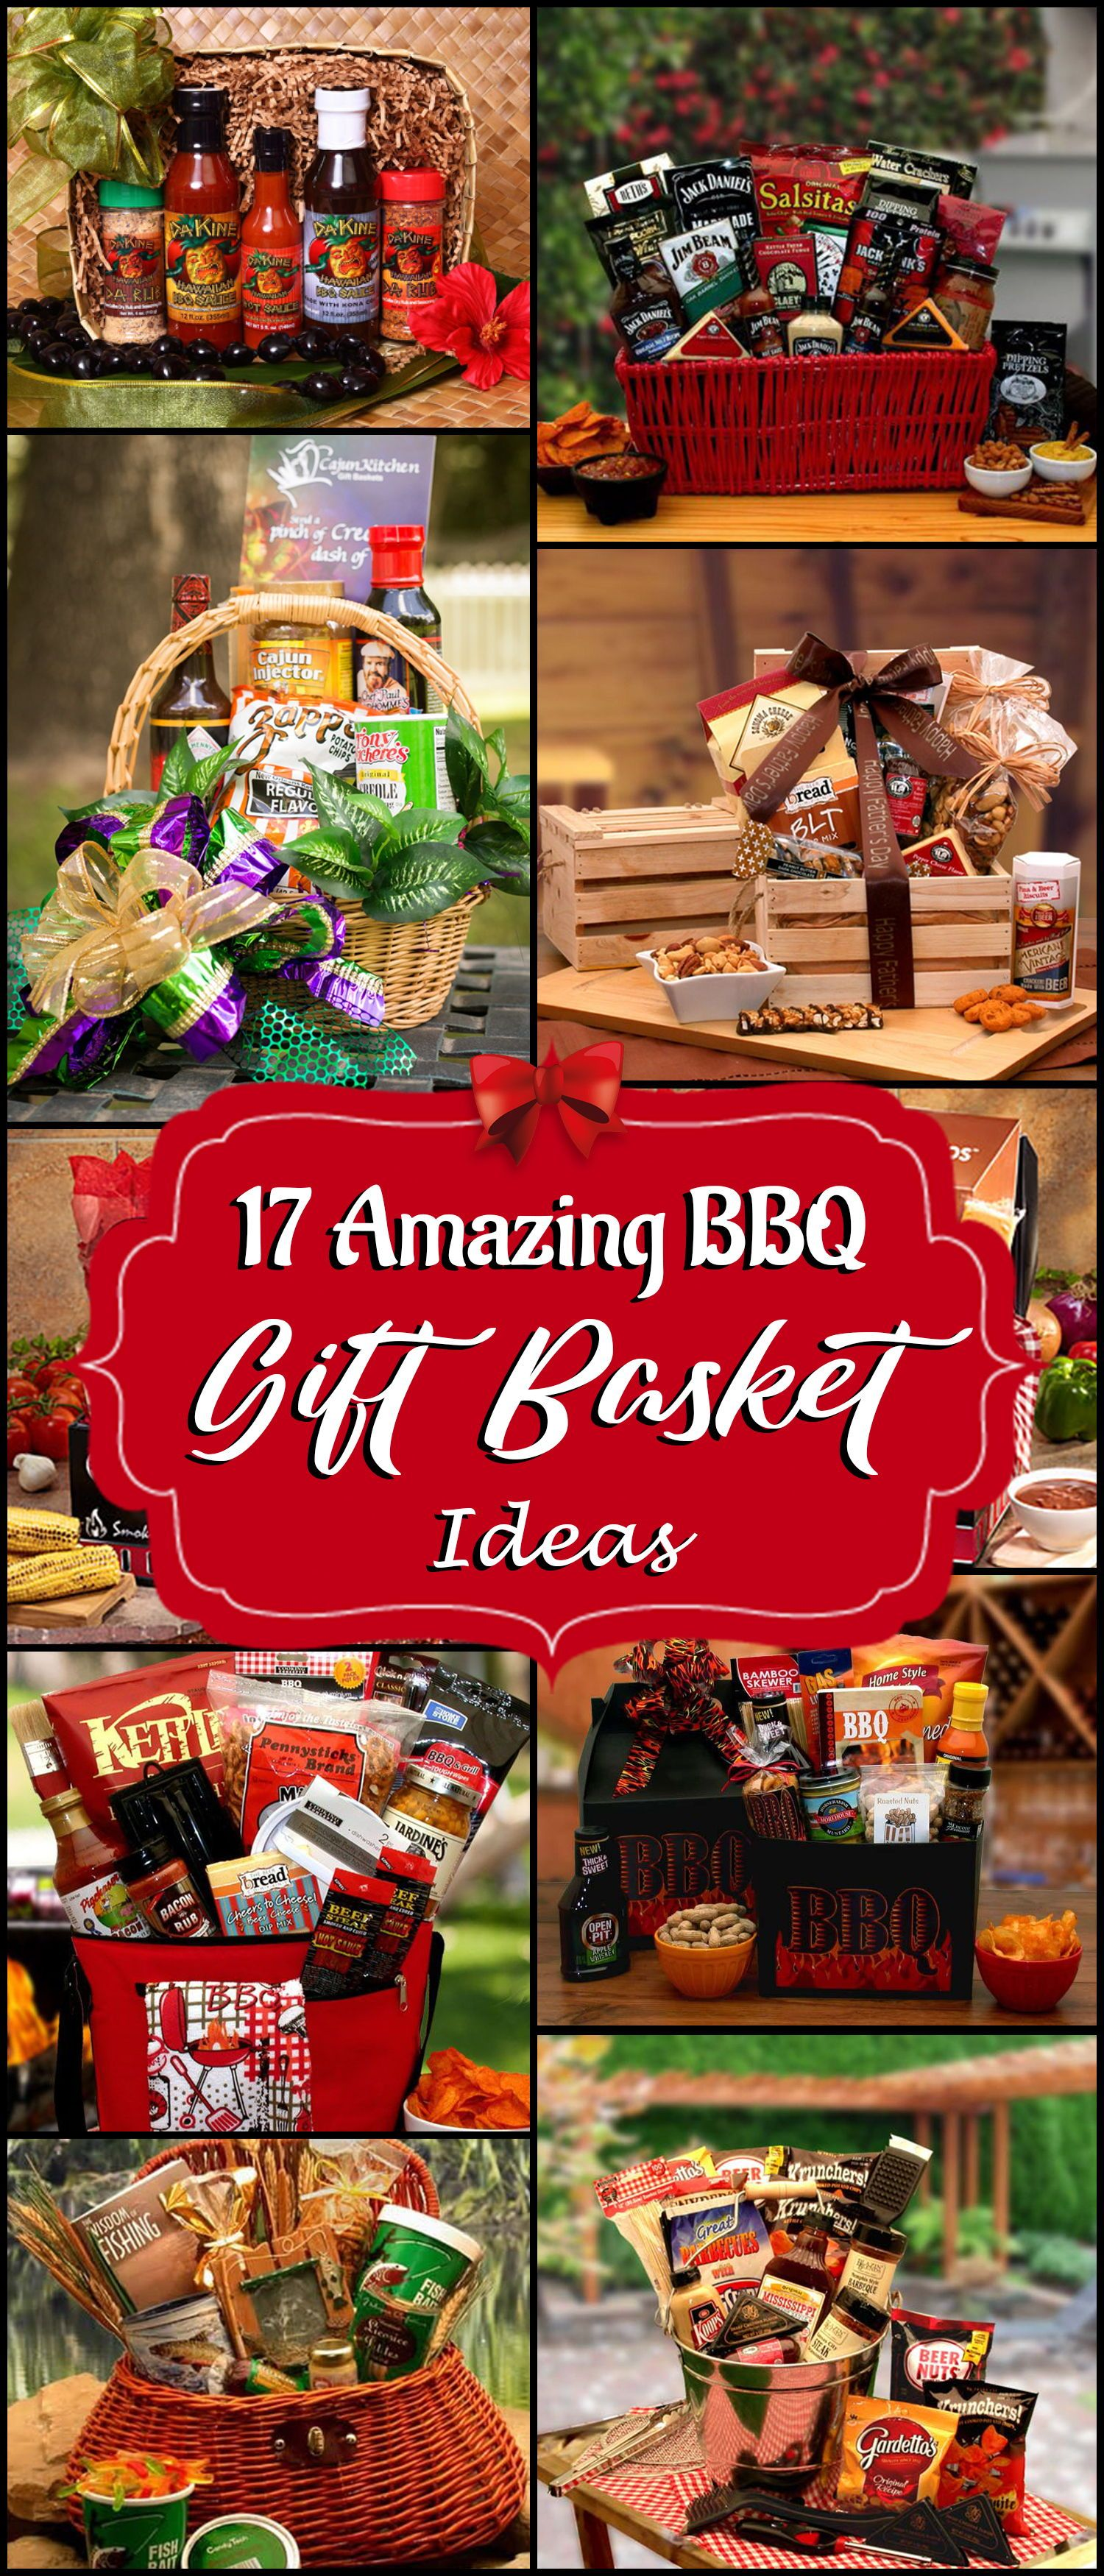 Personalized Gifts For Bbq Lovers With Images Bbq Gifts Bbq Gift Basket Spice Gift Basket